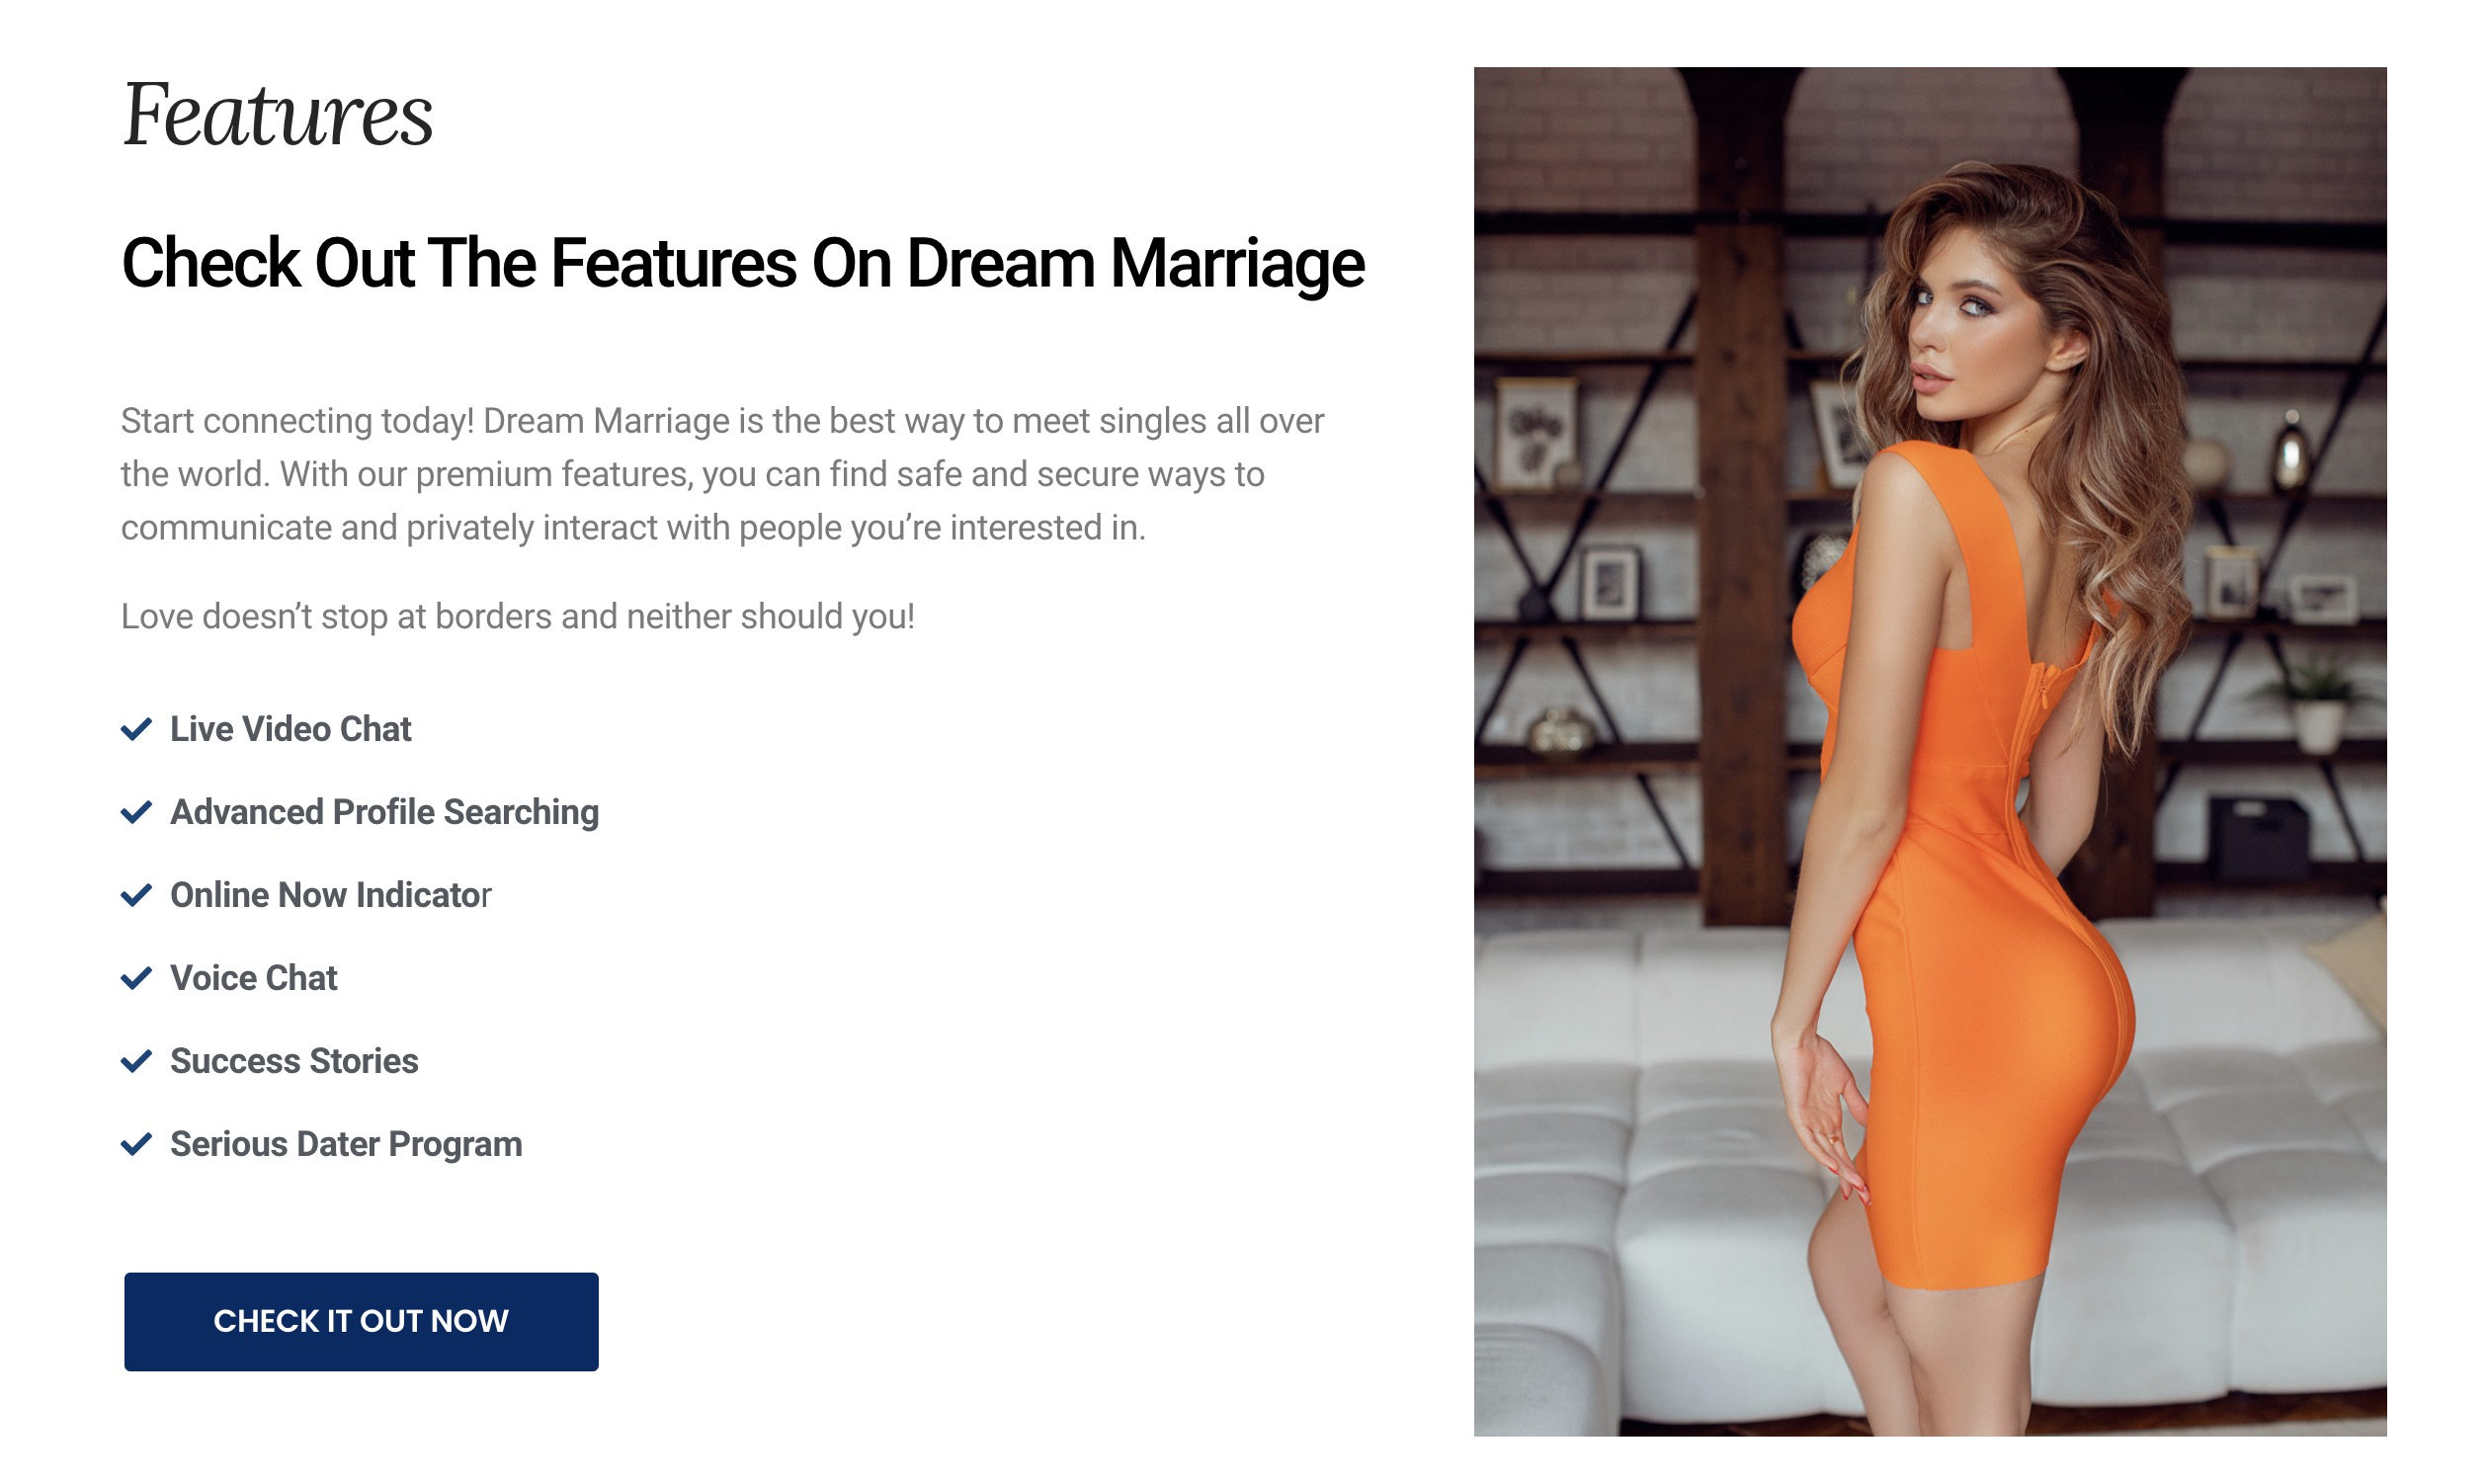 DreamMarriage features